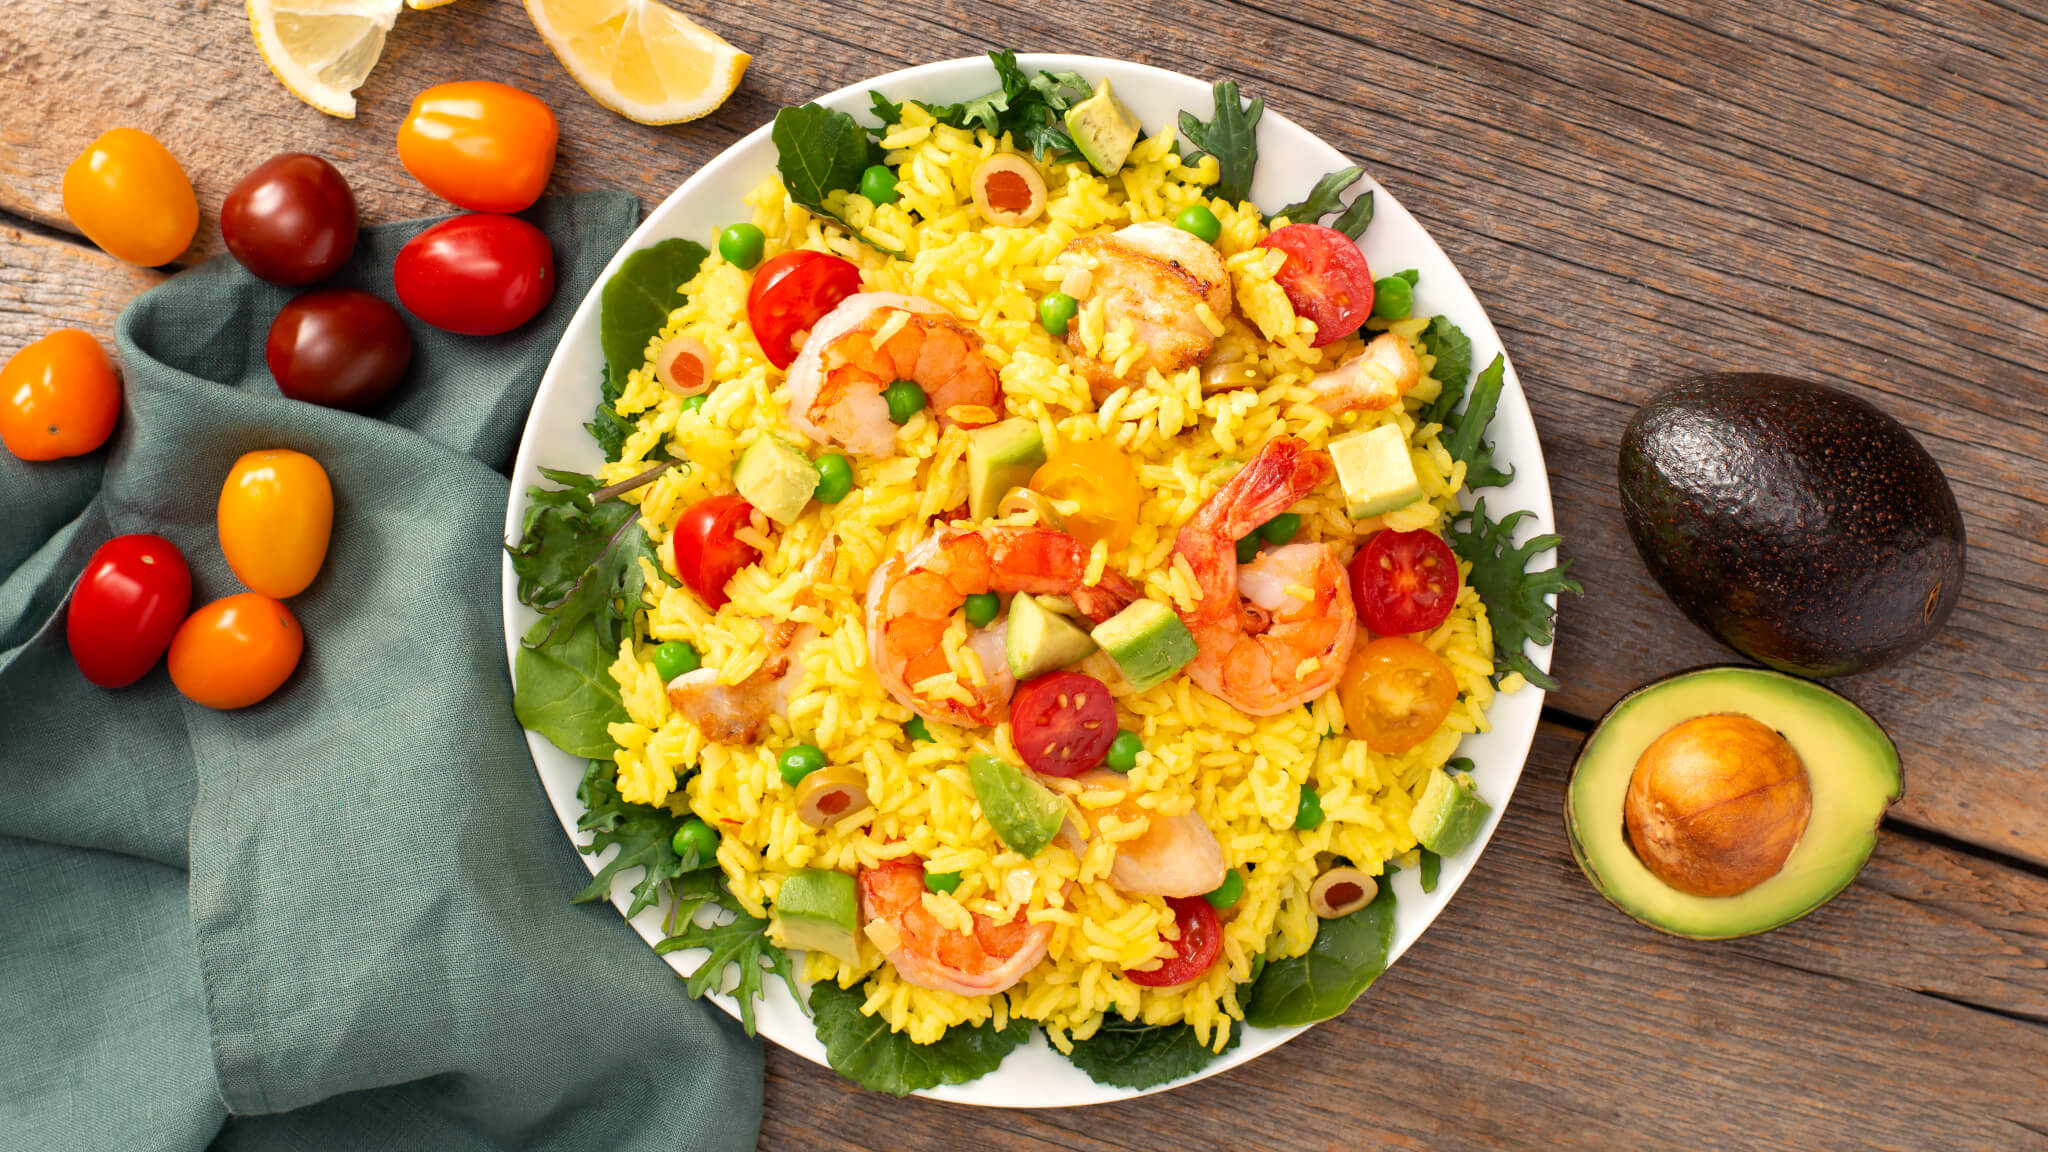 Paella Salad with Shrimp & Chicken